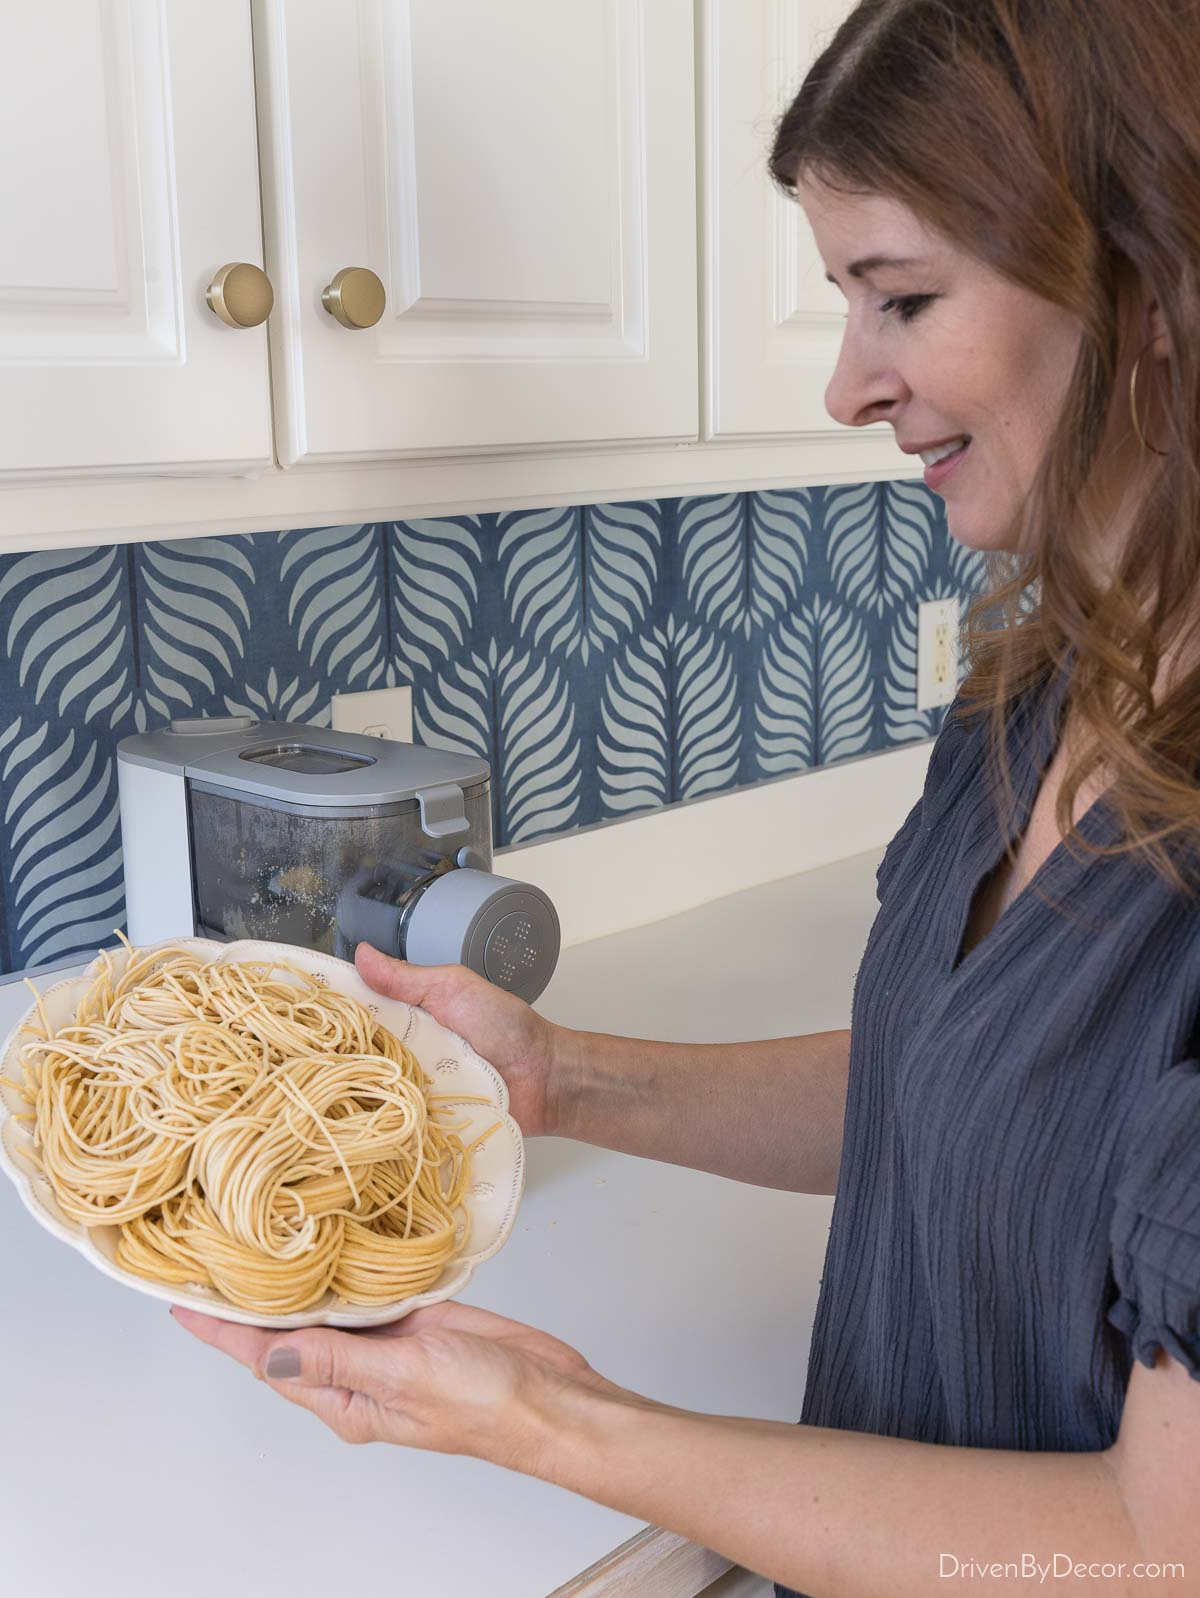 One batch of pasta from our pasta making machine - so simple to use!